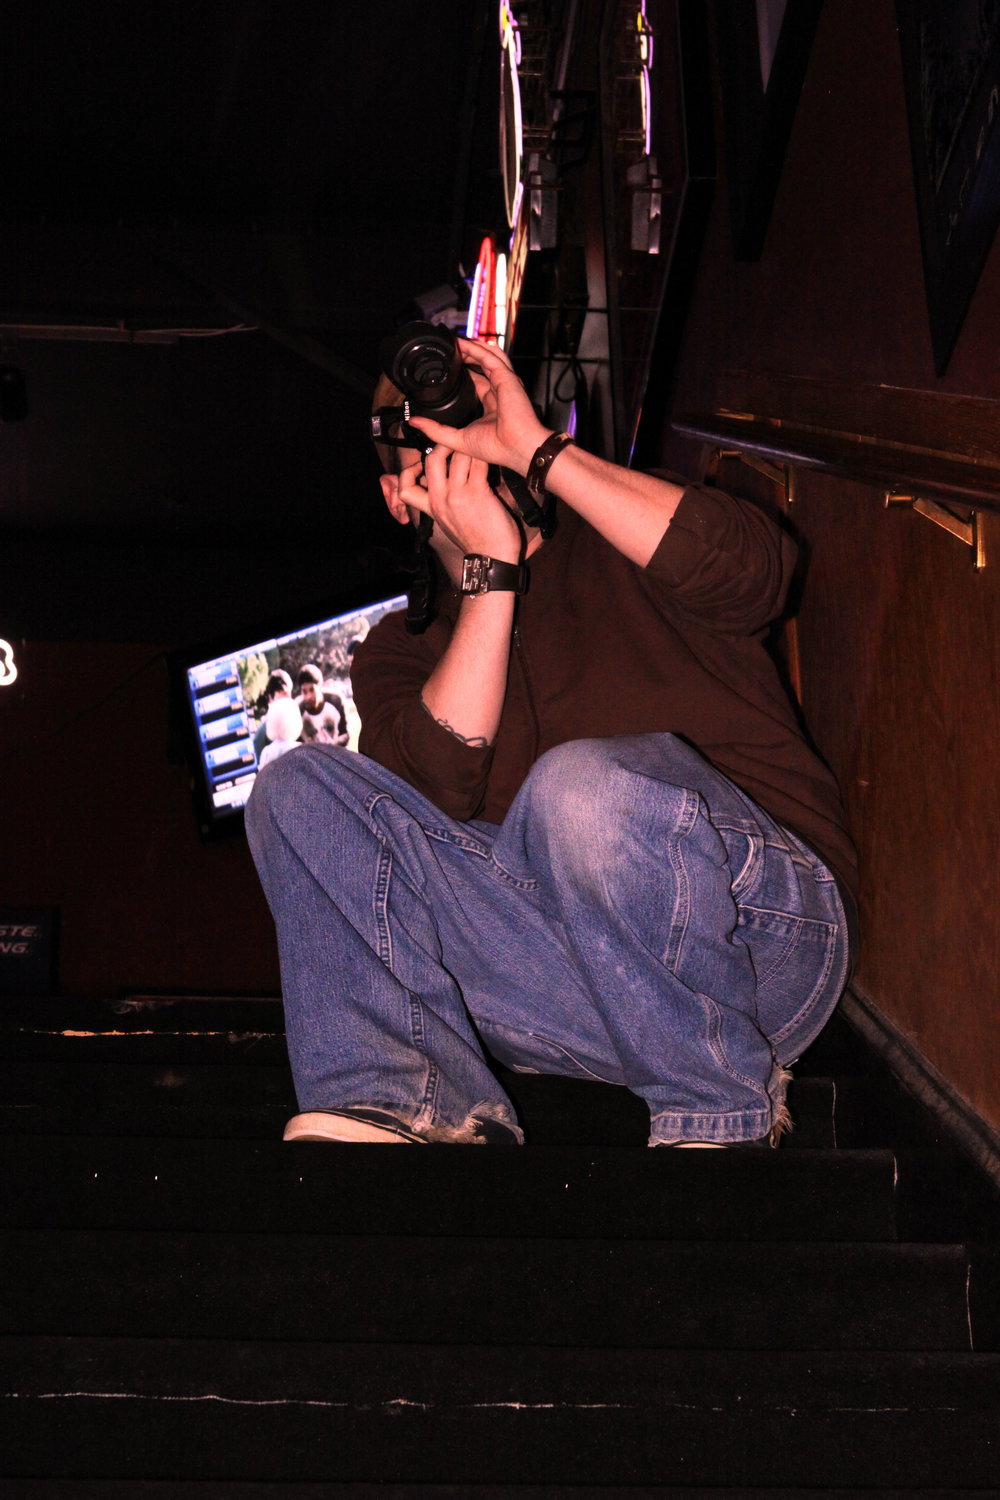 2010 - Picture of me photographing Mostley Crue at a bar in Cary NC. I can't believe I found this!  I also photographed the all Female AC/DC tribute band.  I think it was a different band though.